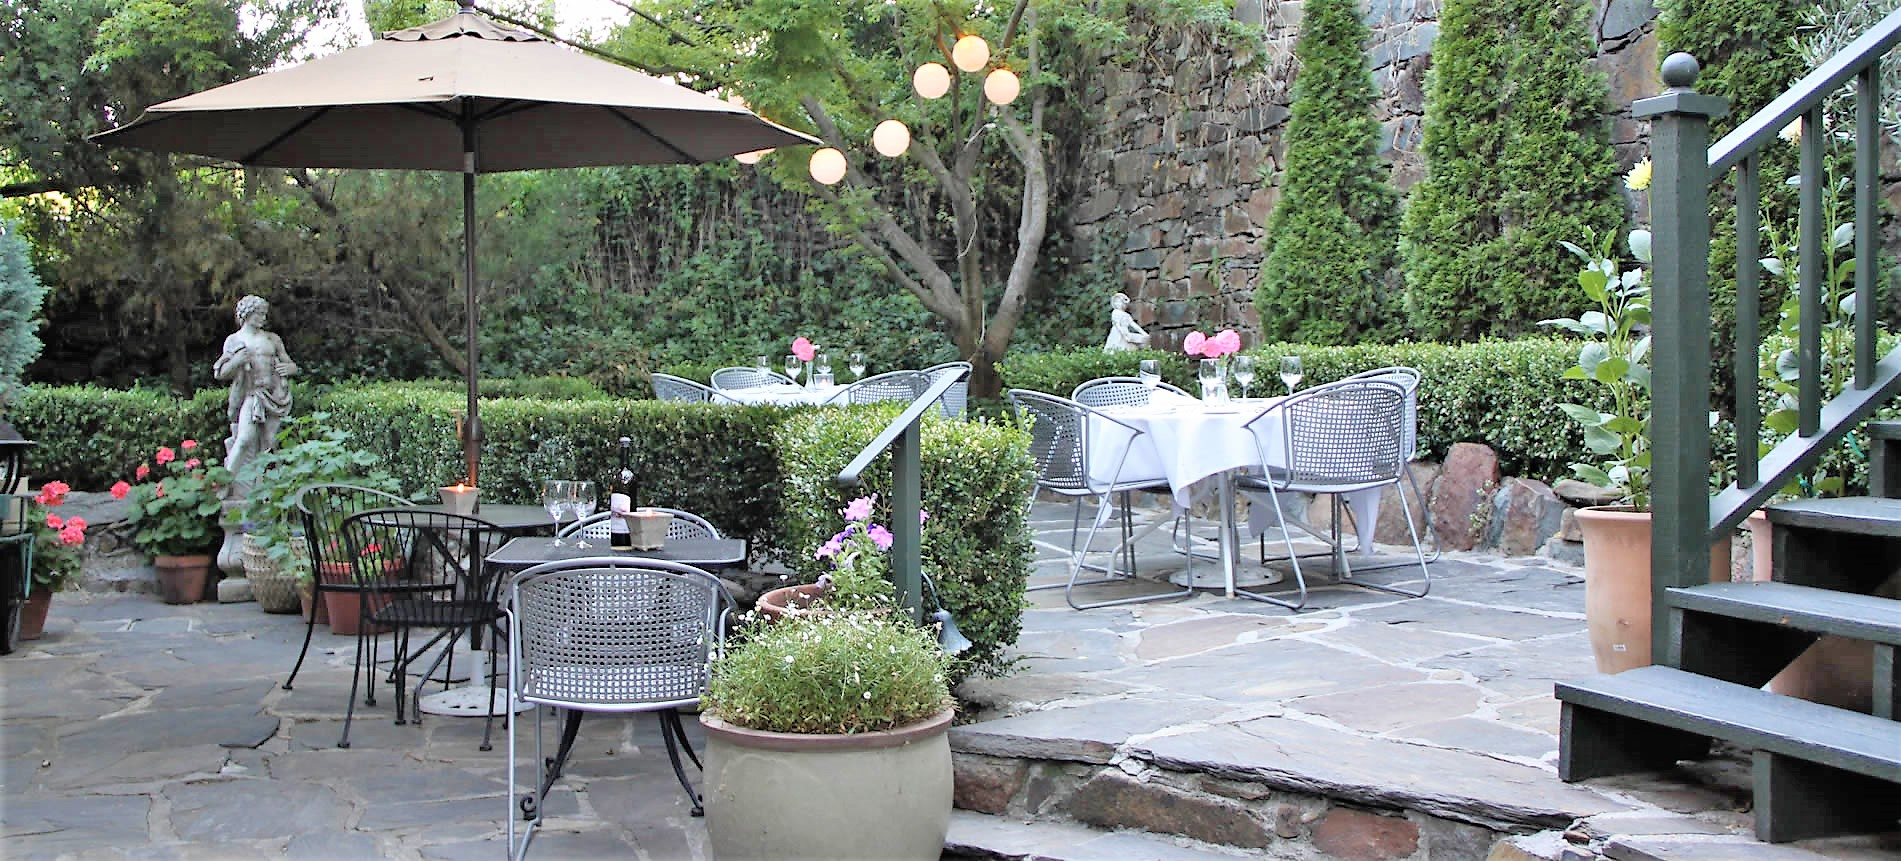 garden patio for events, gatherings, wine country celebrations